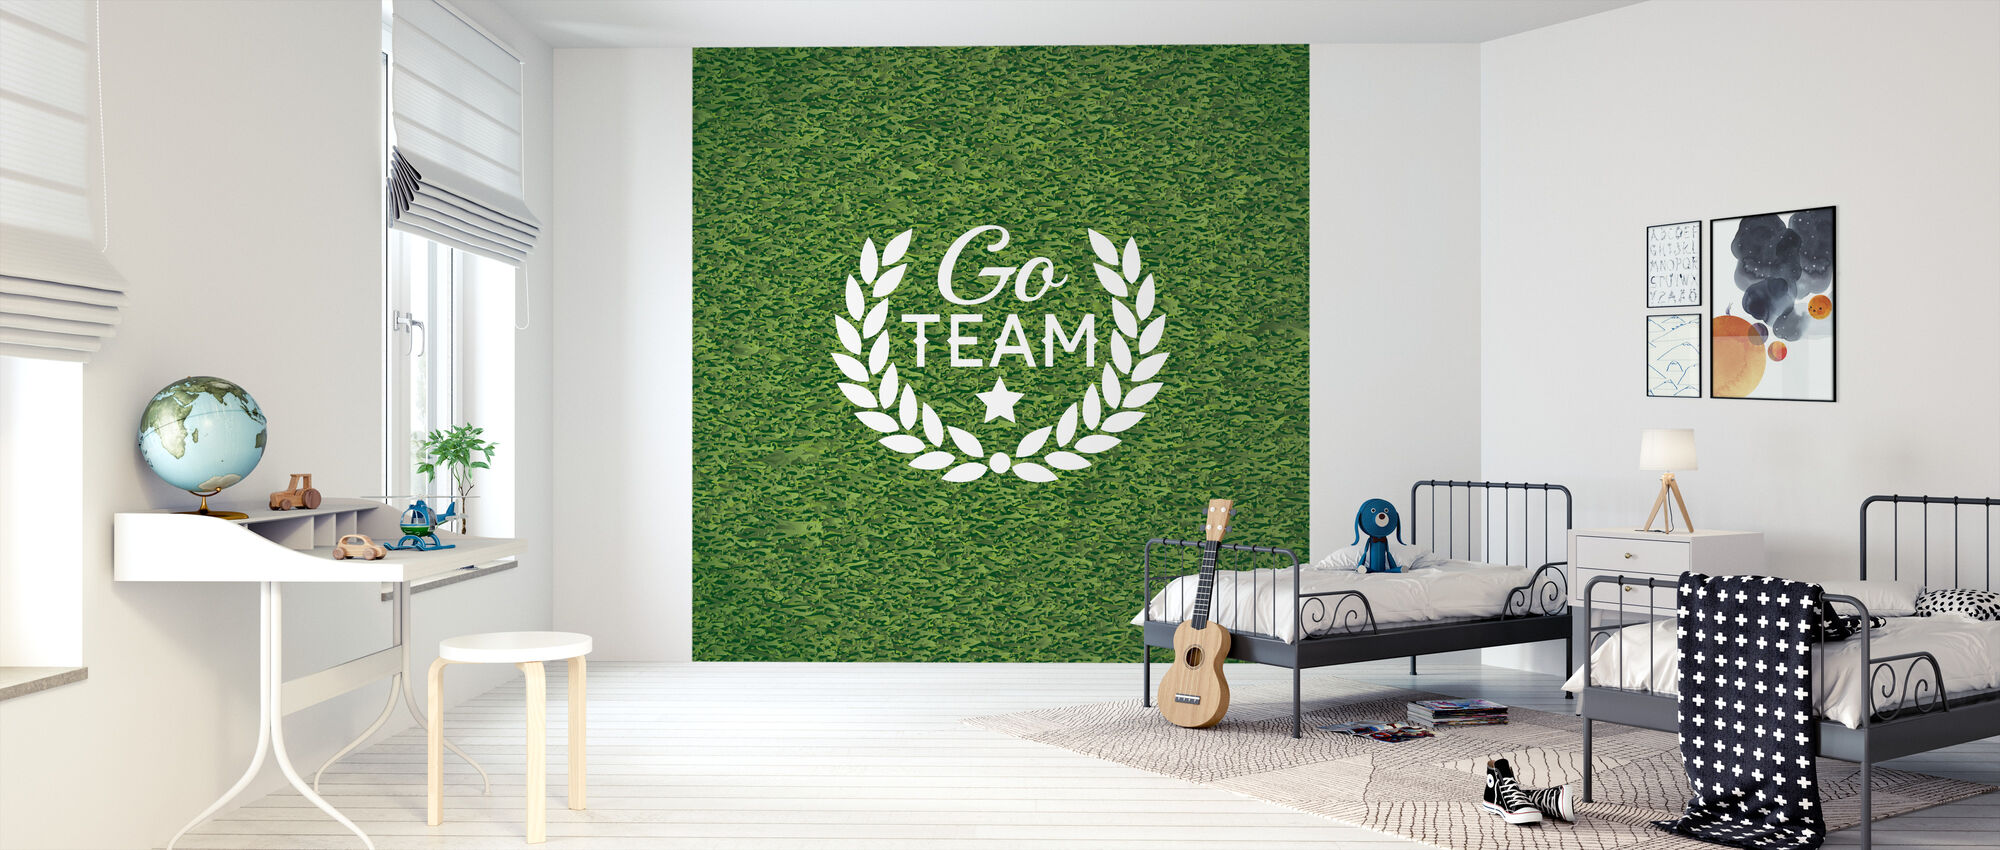 Go Team - Wallpaper - Kids Room